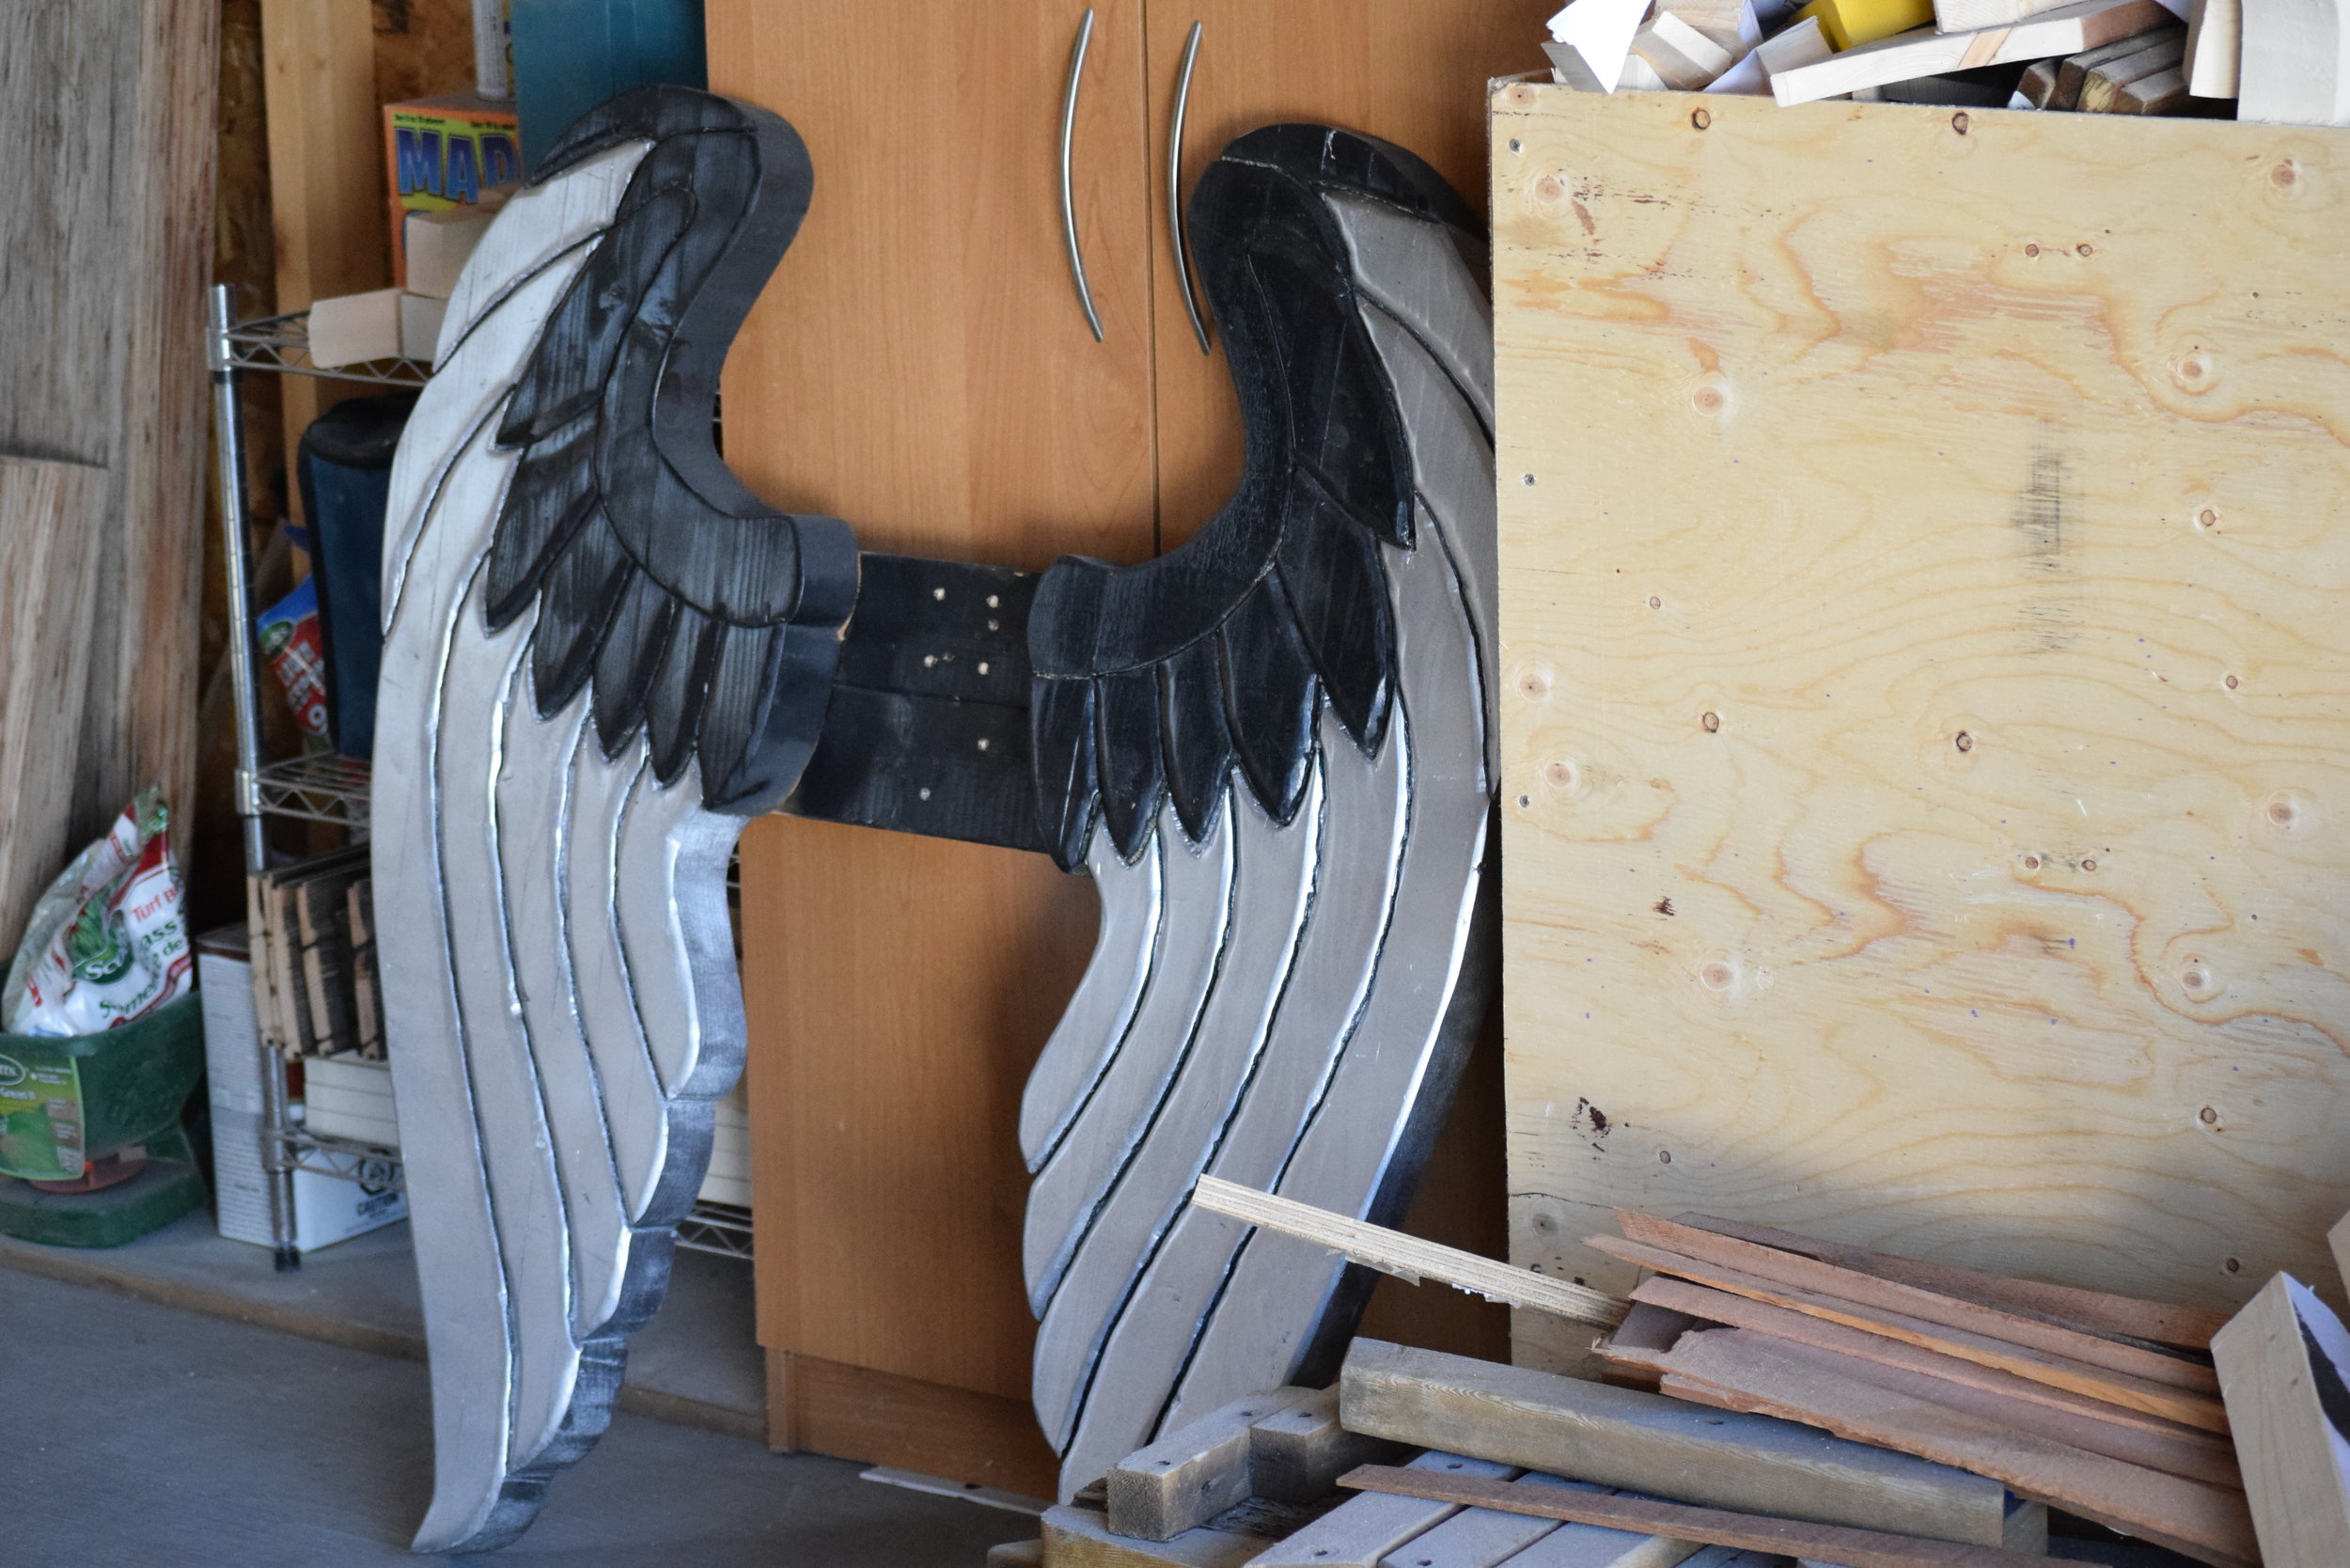 The Harley-Davidson wings.